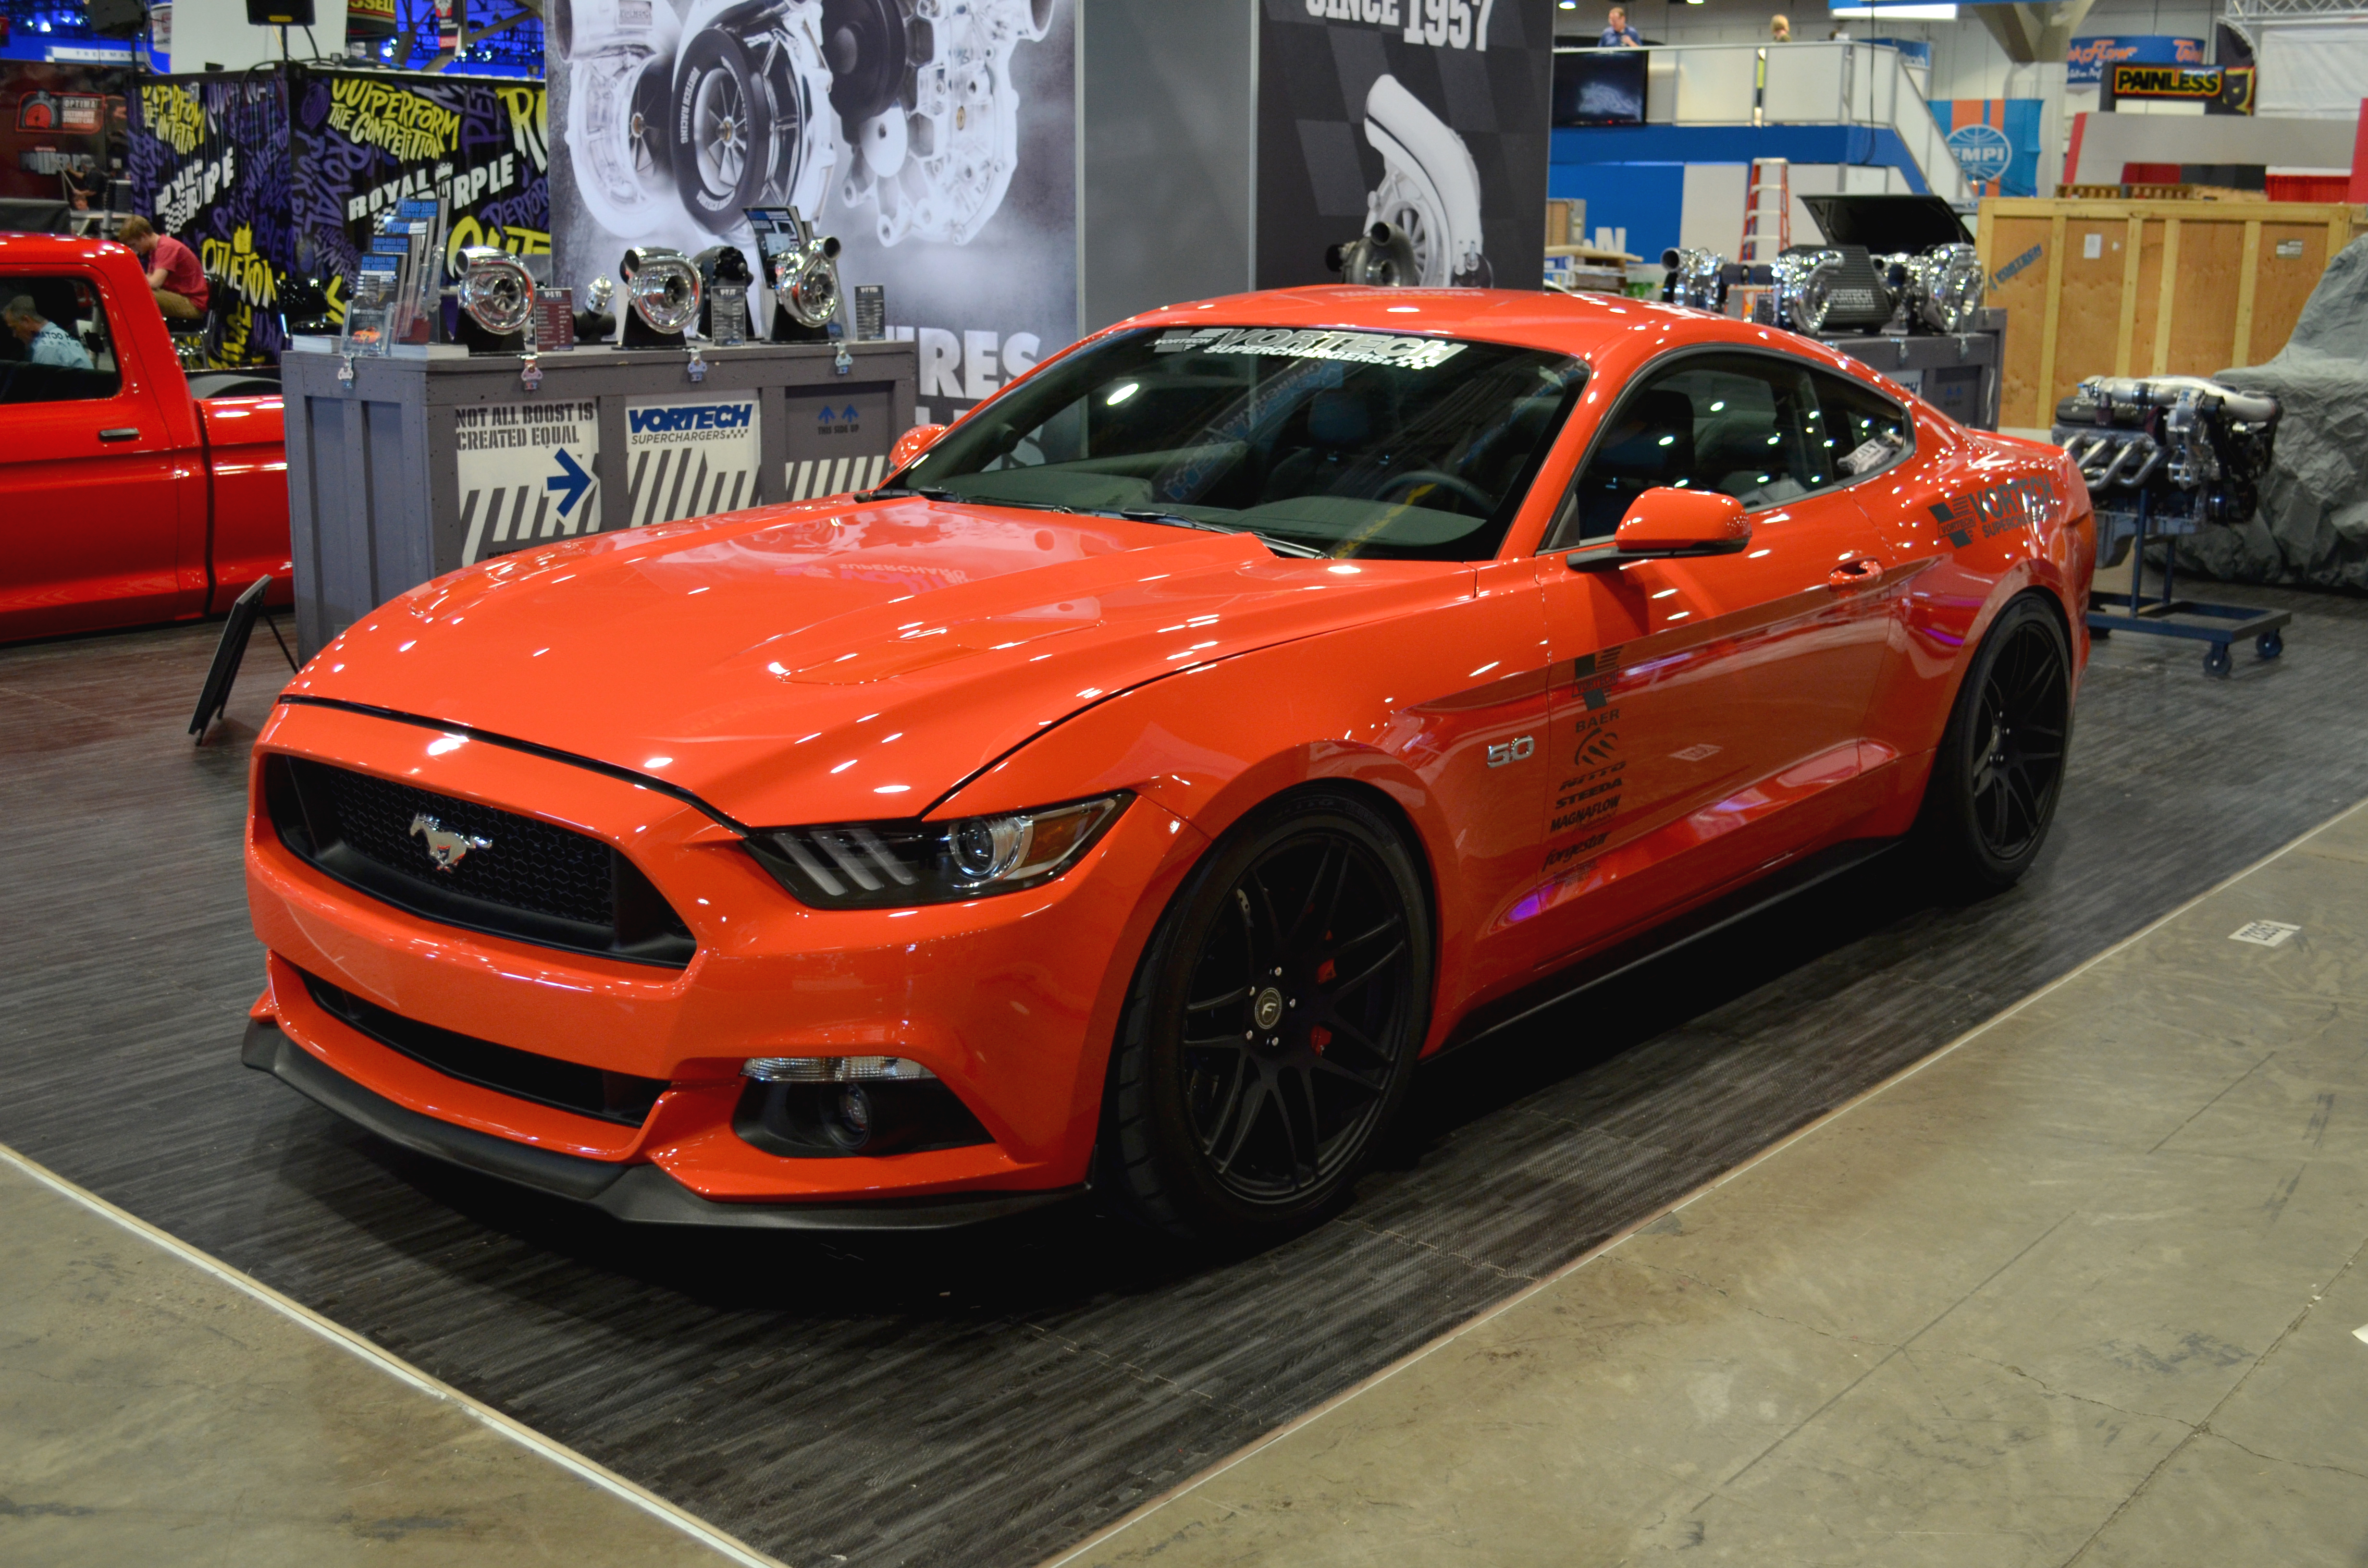 Vortech Supercharged Mustang Drops Covers At Sema